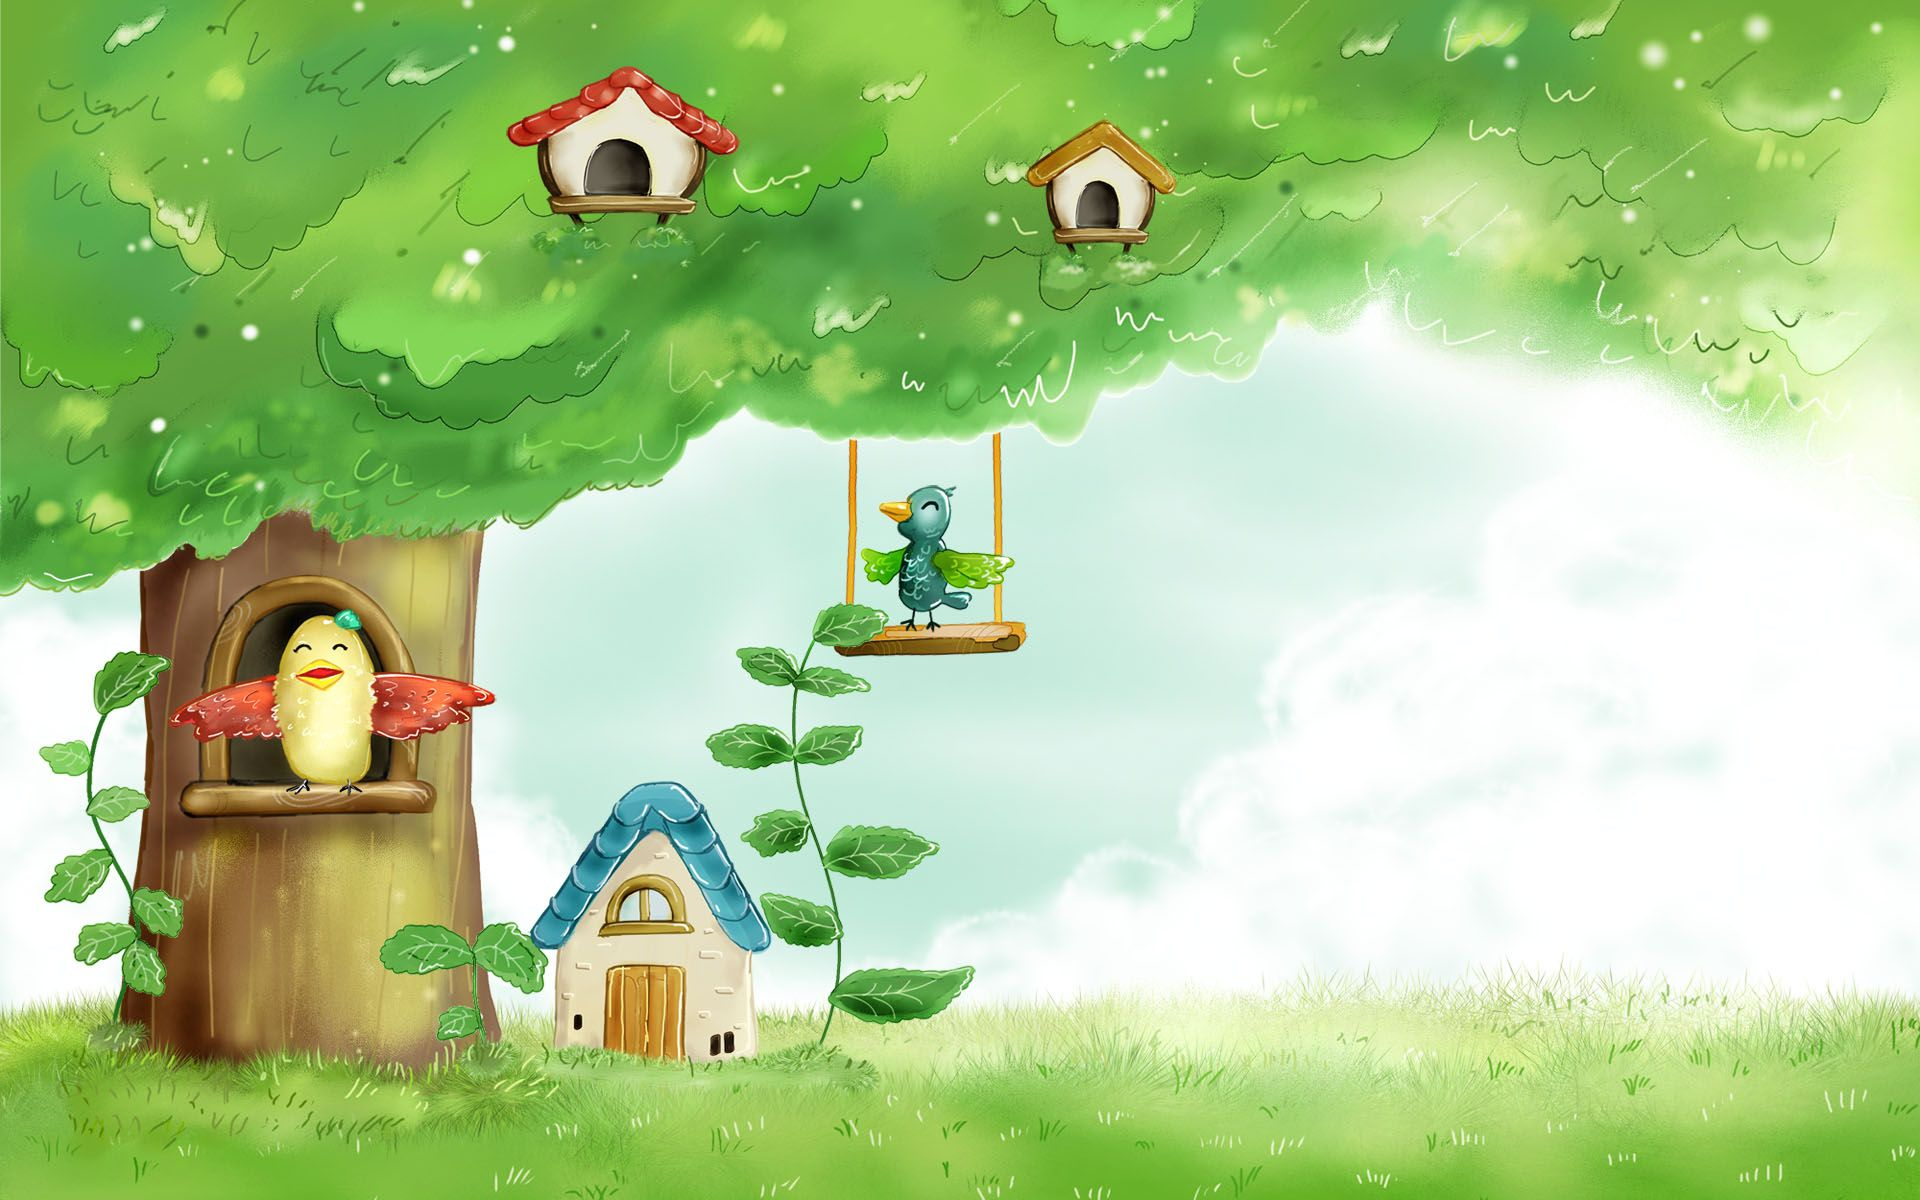 free spring clipart backgrounds cartoon vector illustration spring wallpapers 1920x1200 vector spring [ 1920 x 1200 Pixel ]